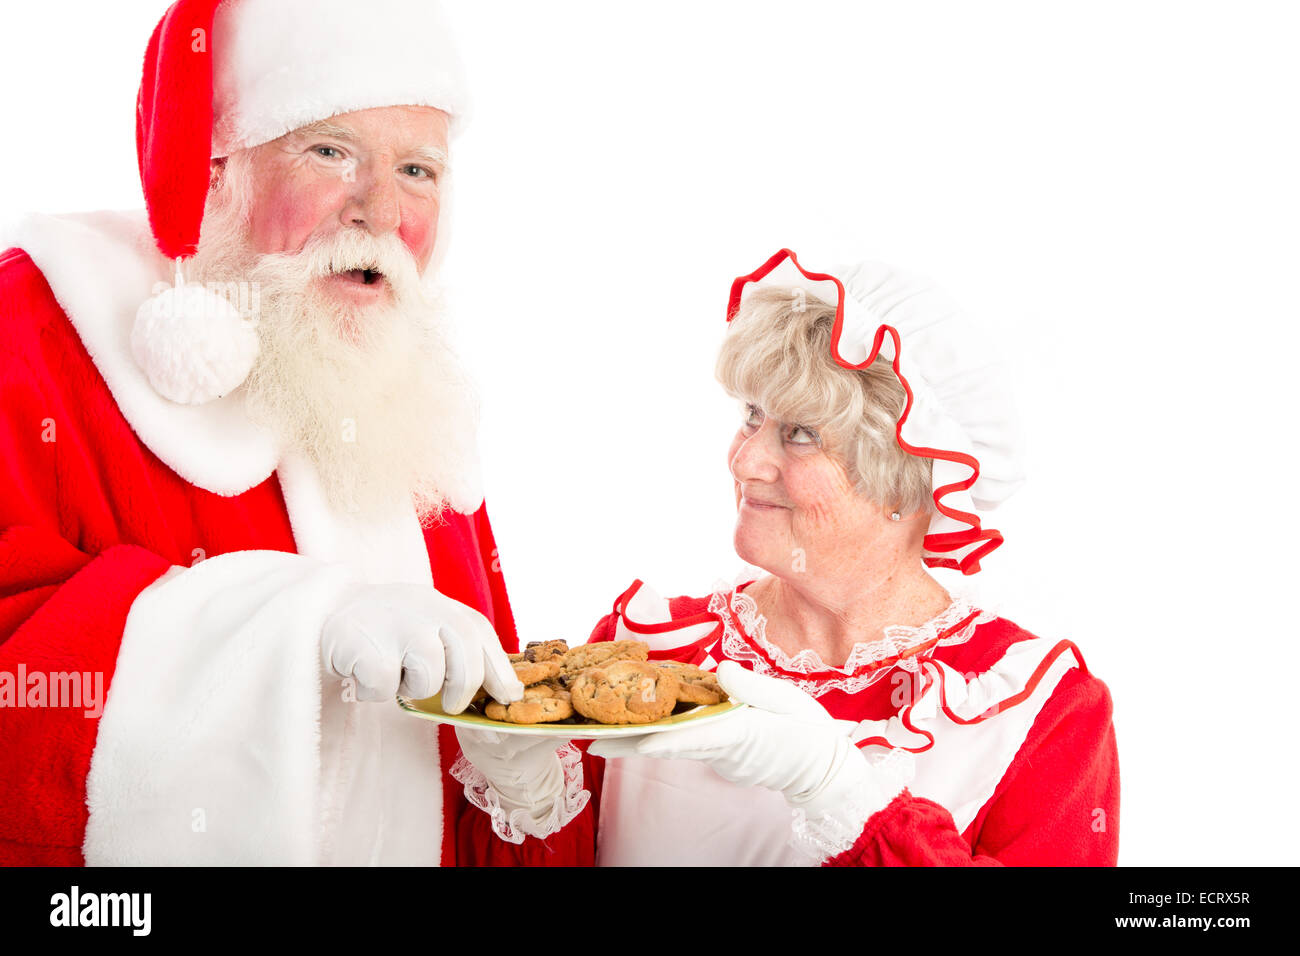 A laughing Santa takes a cookie from the plate Mrs Clause offers him. - Stock Image